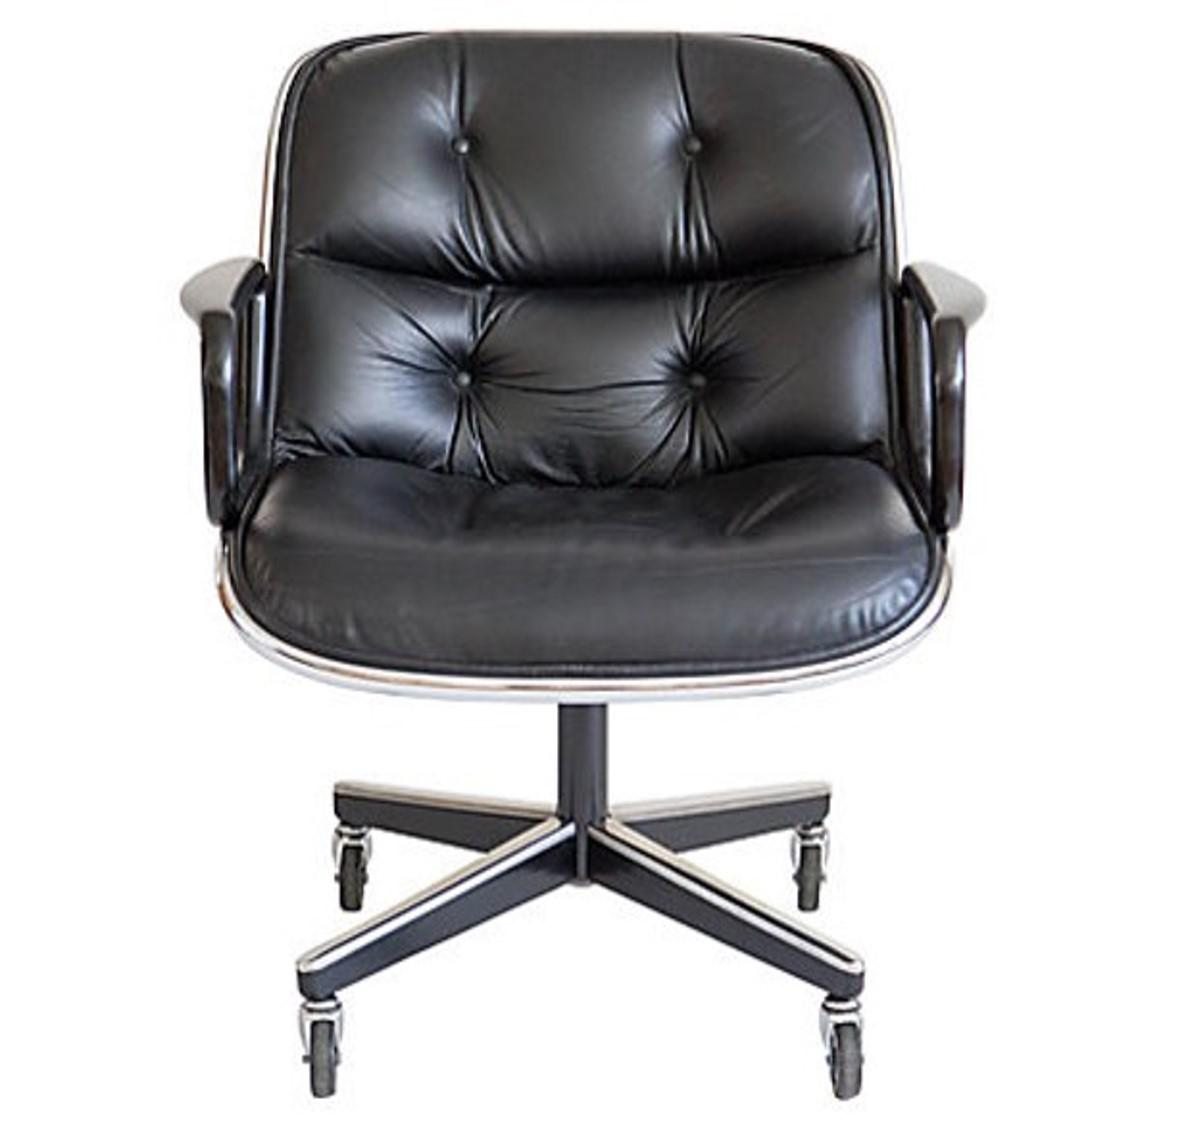 Attractive Charles Pollock Executive Chair By Knoll   Image 3 Of 10